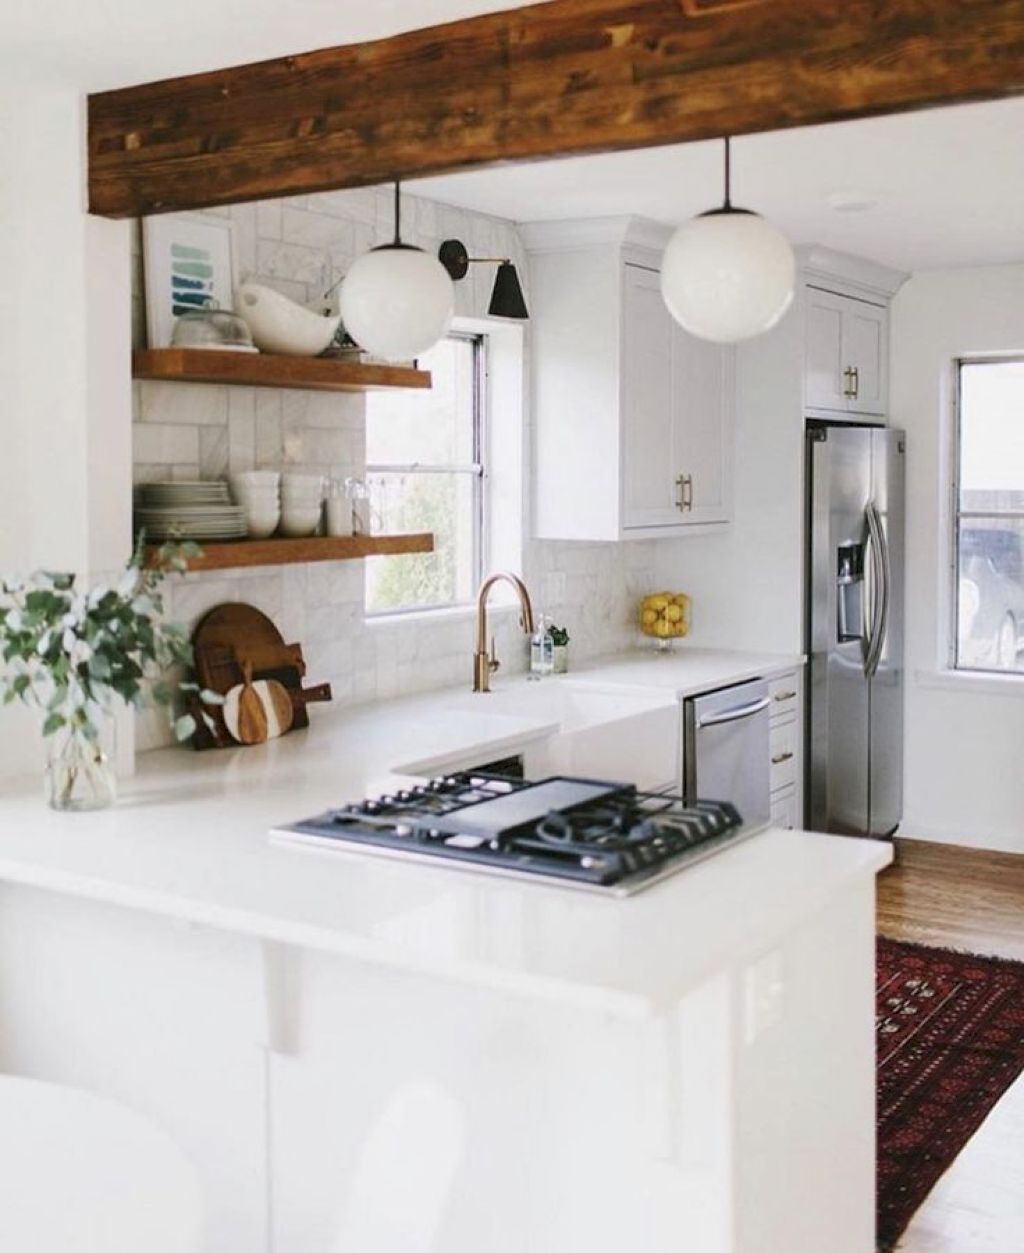 Pin von Kayla Frank auf kitchens & bathrooms | Pinterest